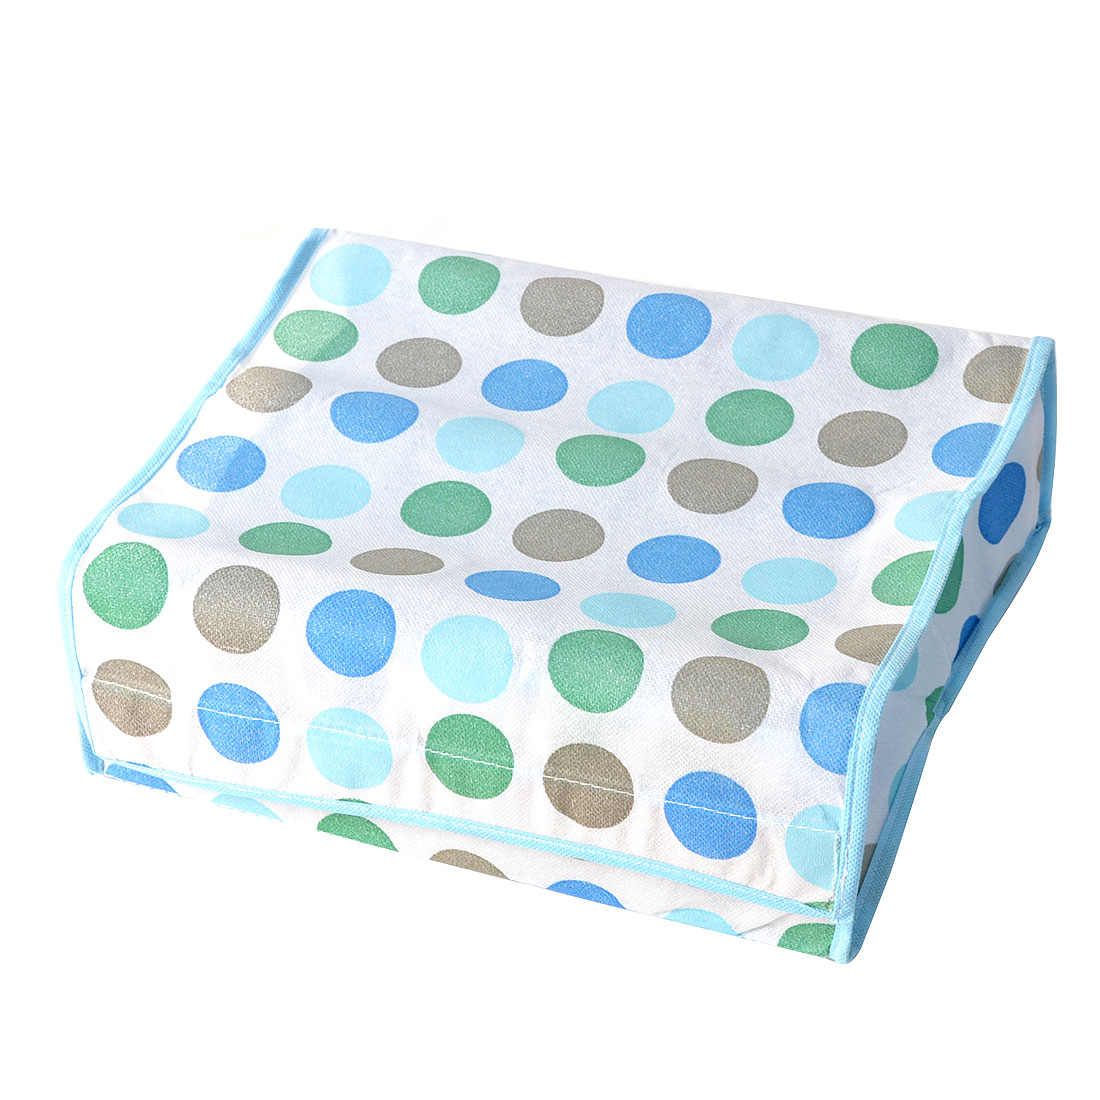 Colorful Polka Dot Rectangle Shaped 16 Compartments Non-woven Fabric Gadgets Organizer Storage Bag